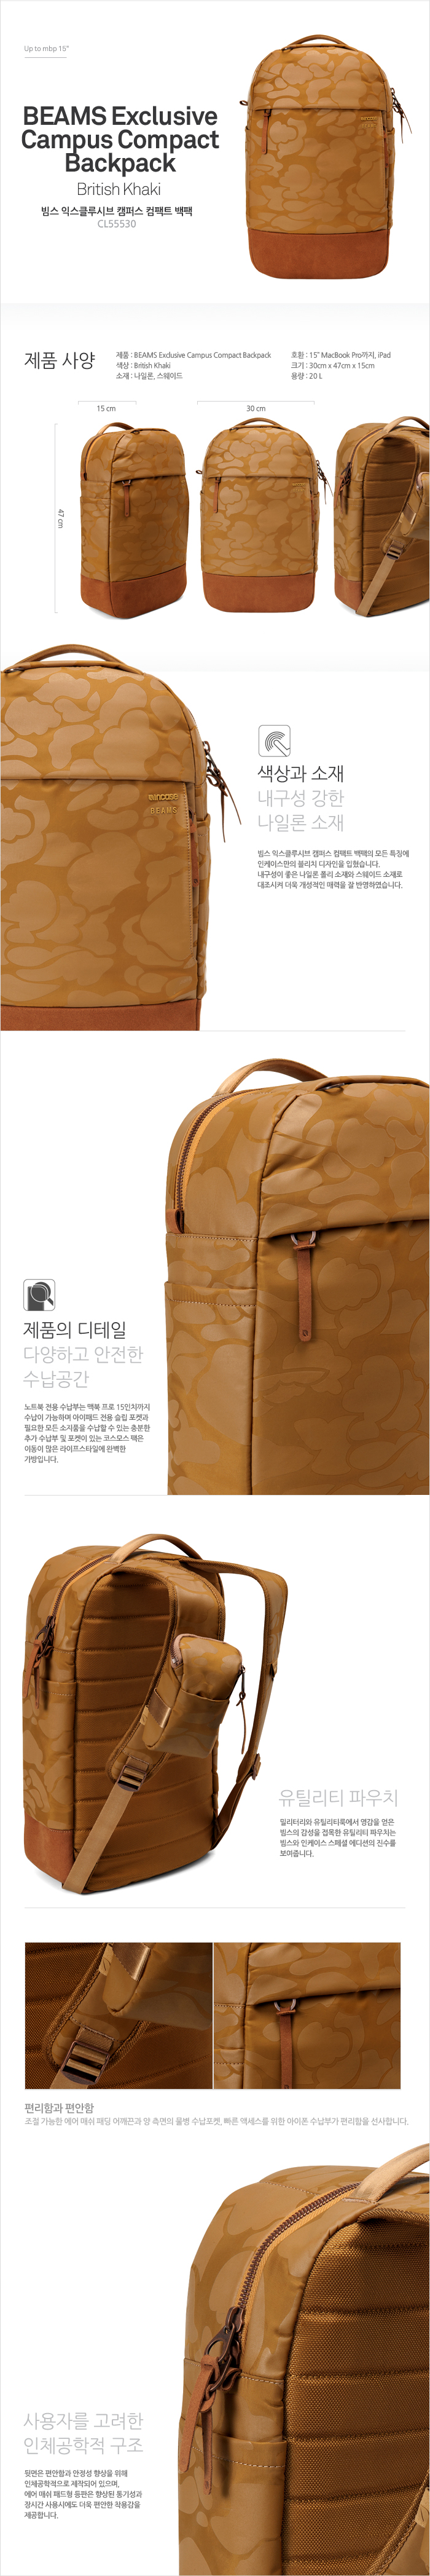 [인케이스]INCASE - BEAMS Exclusive Campus Compact Backpack CL55530 (British Khaki) 인케이스코리아 정품 AS가능